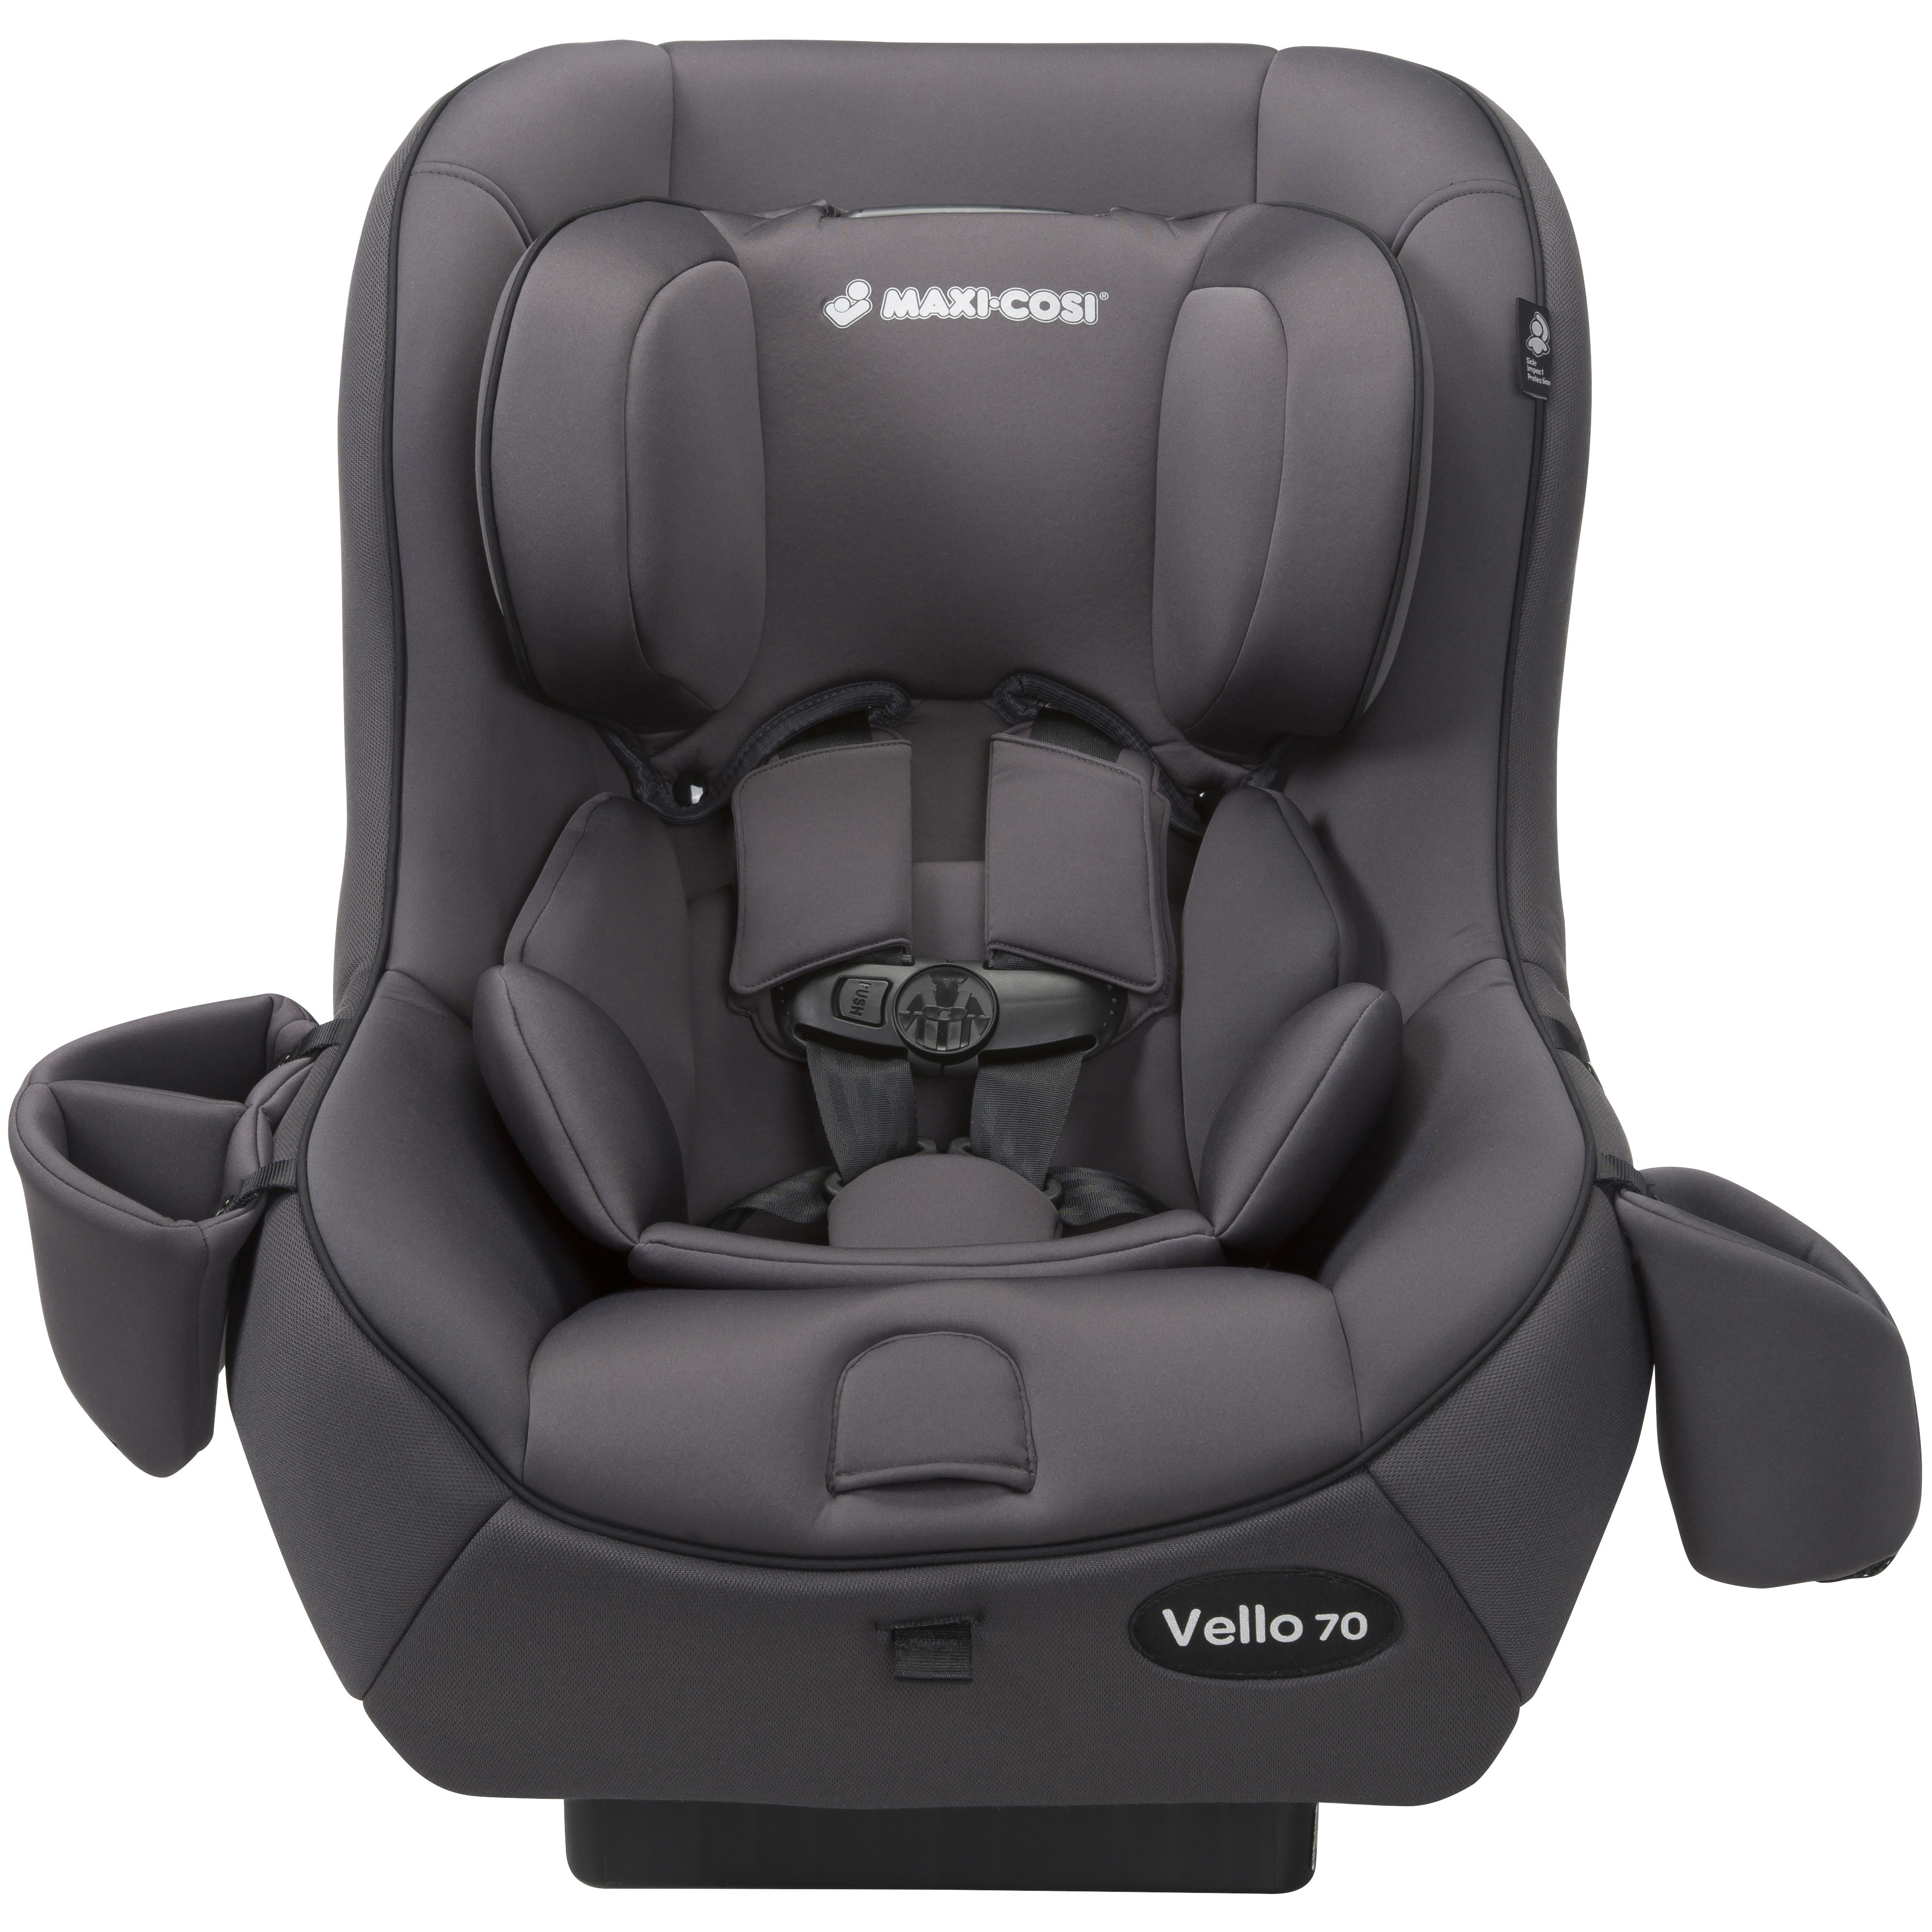 Maxi Cosi Vello 70 Convertible Car Seat, Grey